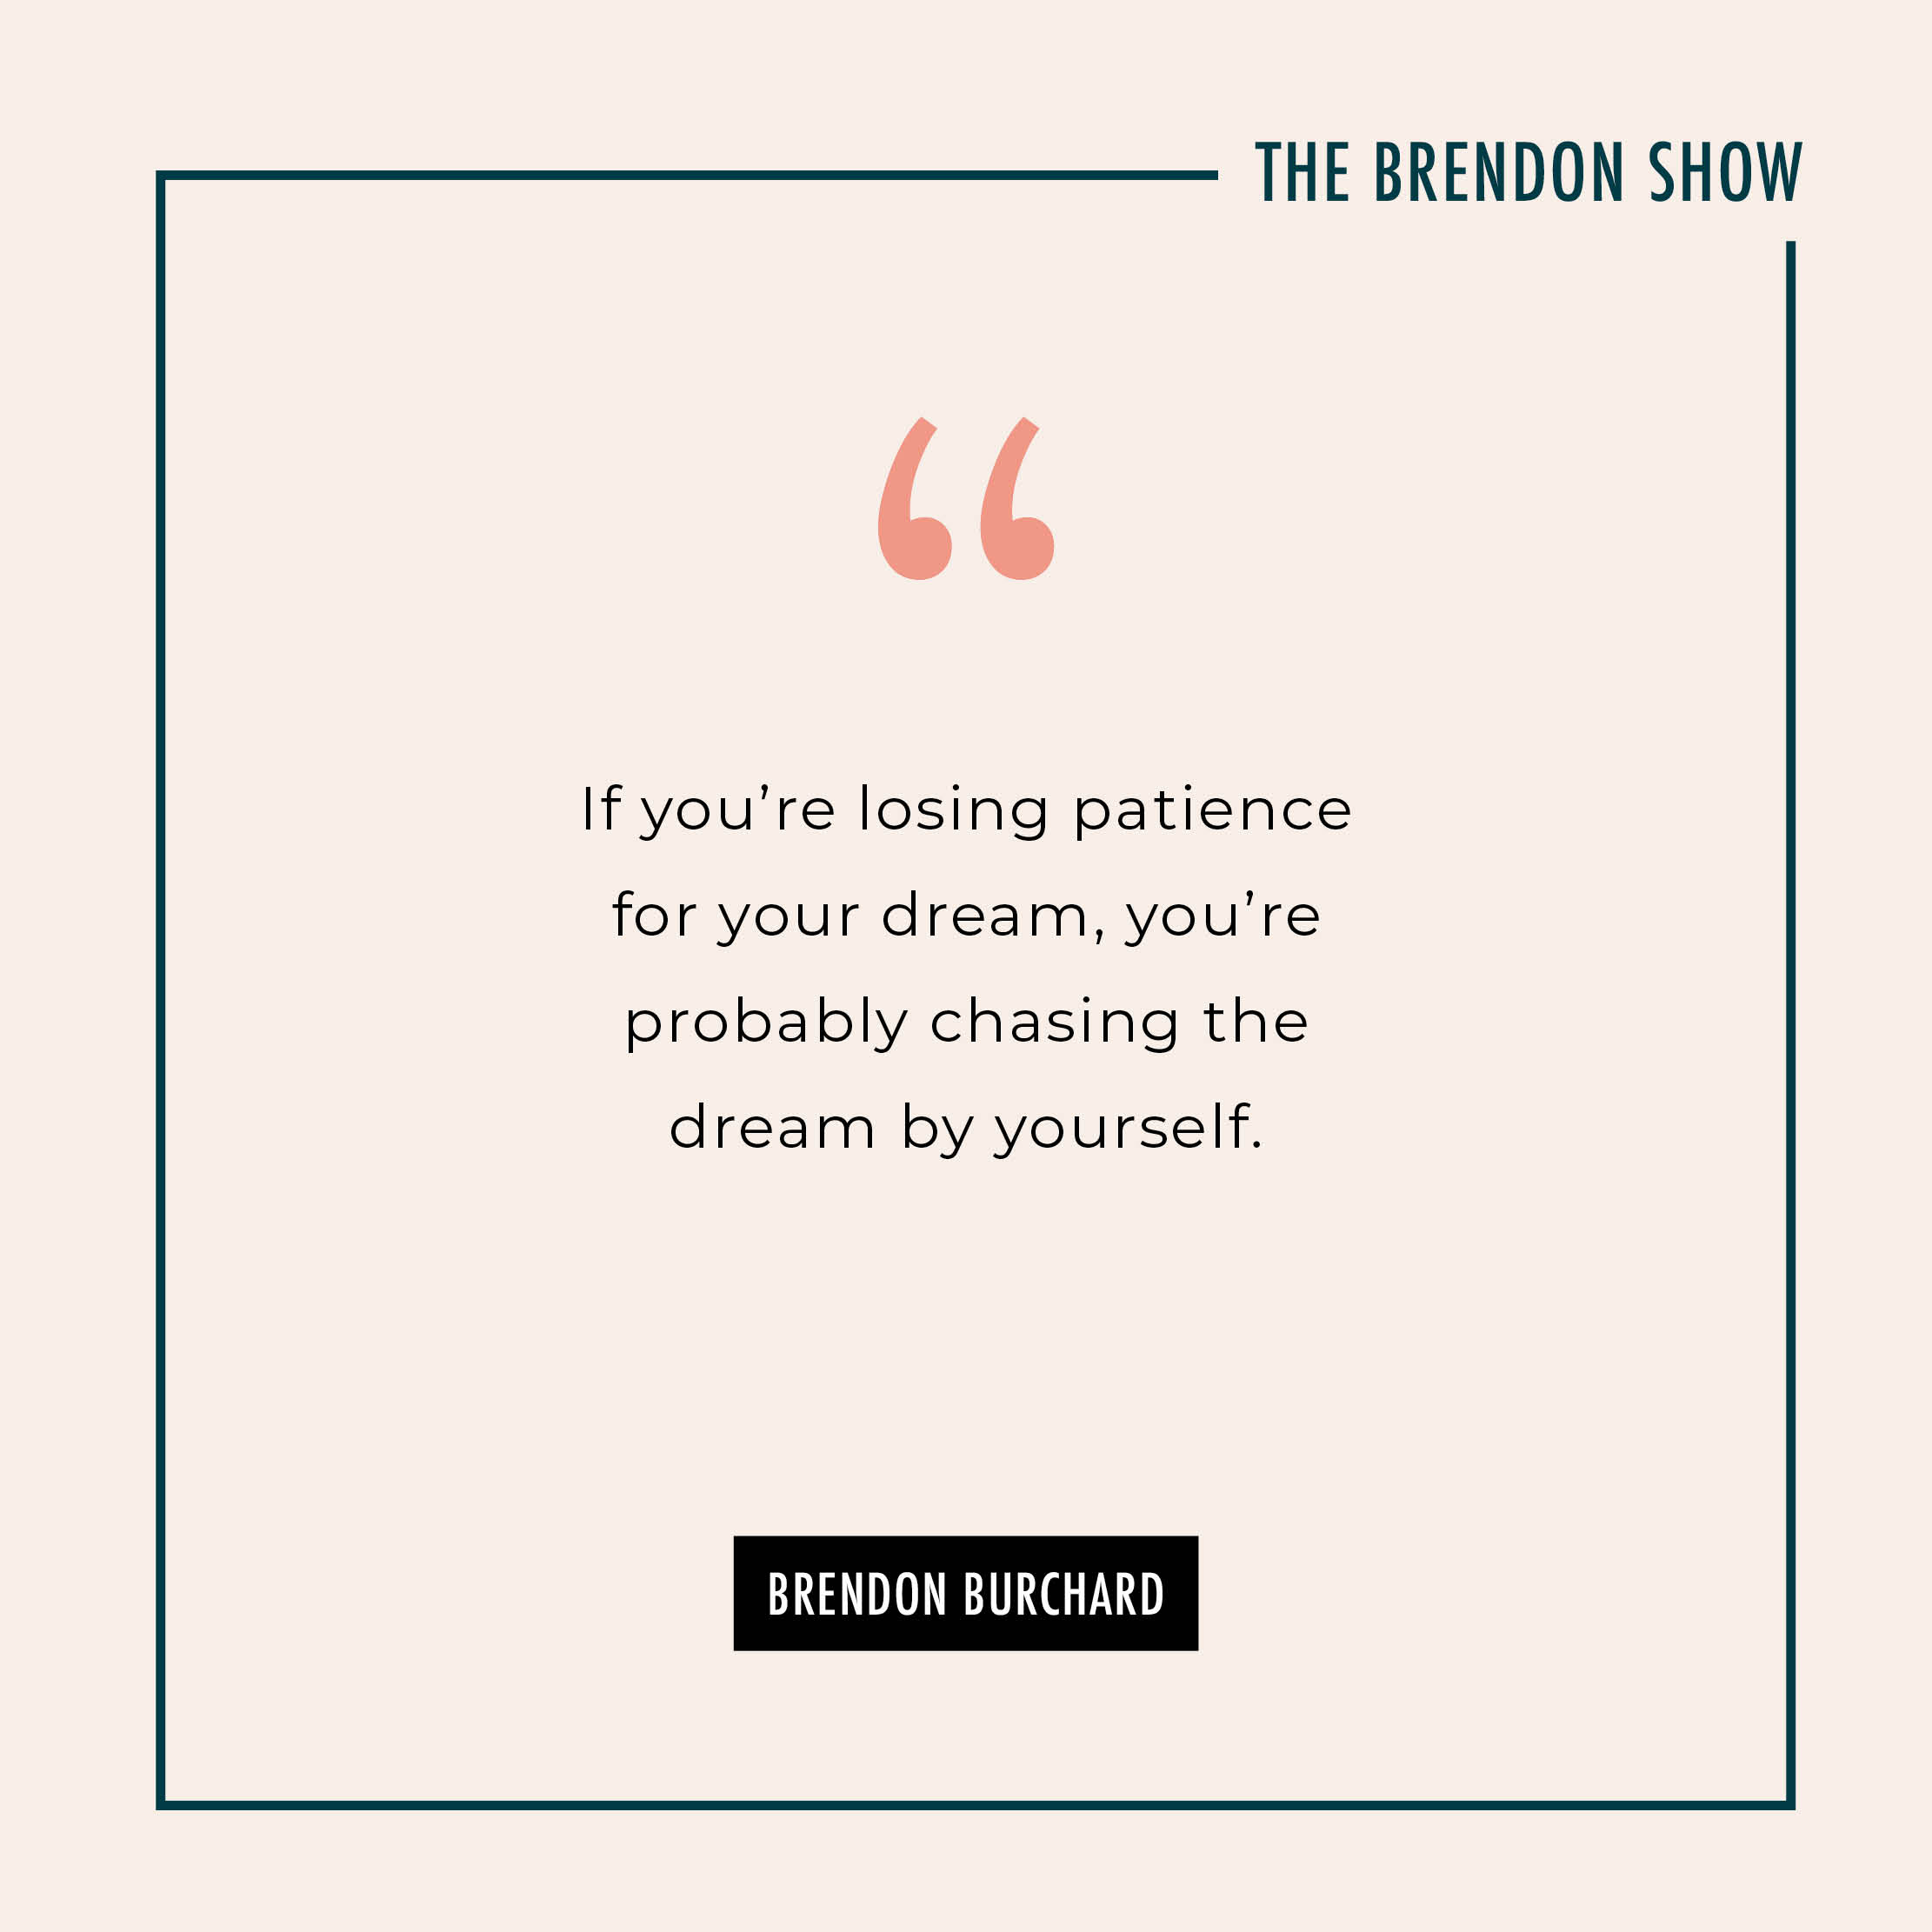 How to Have Patience Pursuing Your Dream - Brendon Burchard